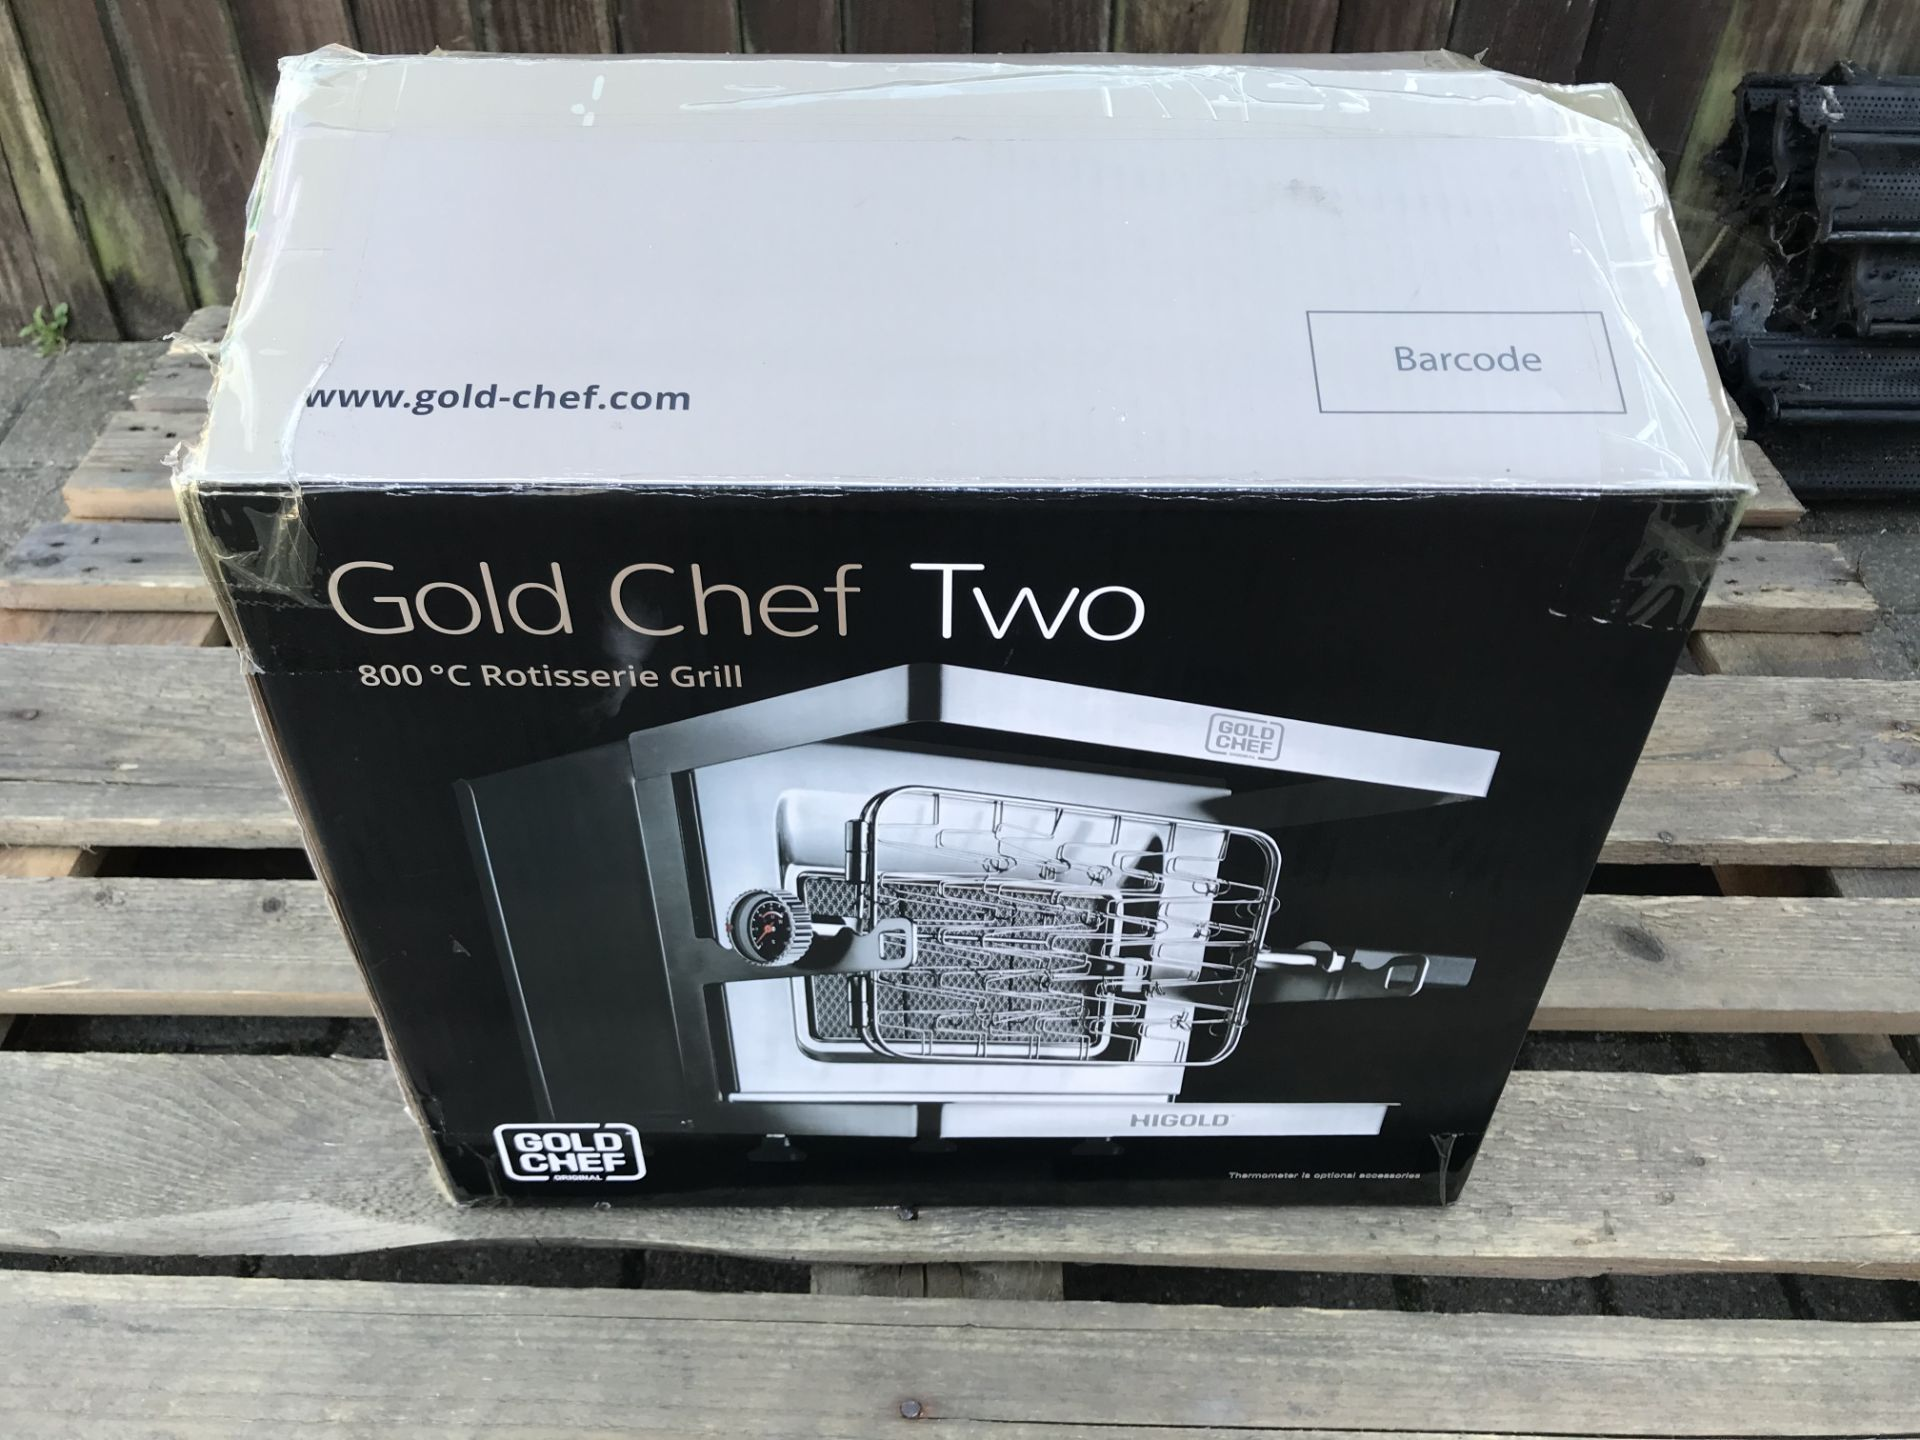 Lot 12 - GOLD CHEF TWO 800C ROTISSERIE GRILL